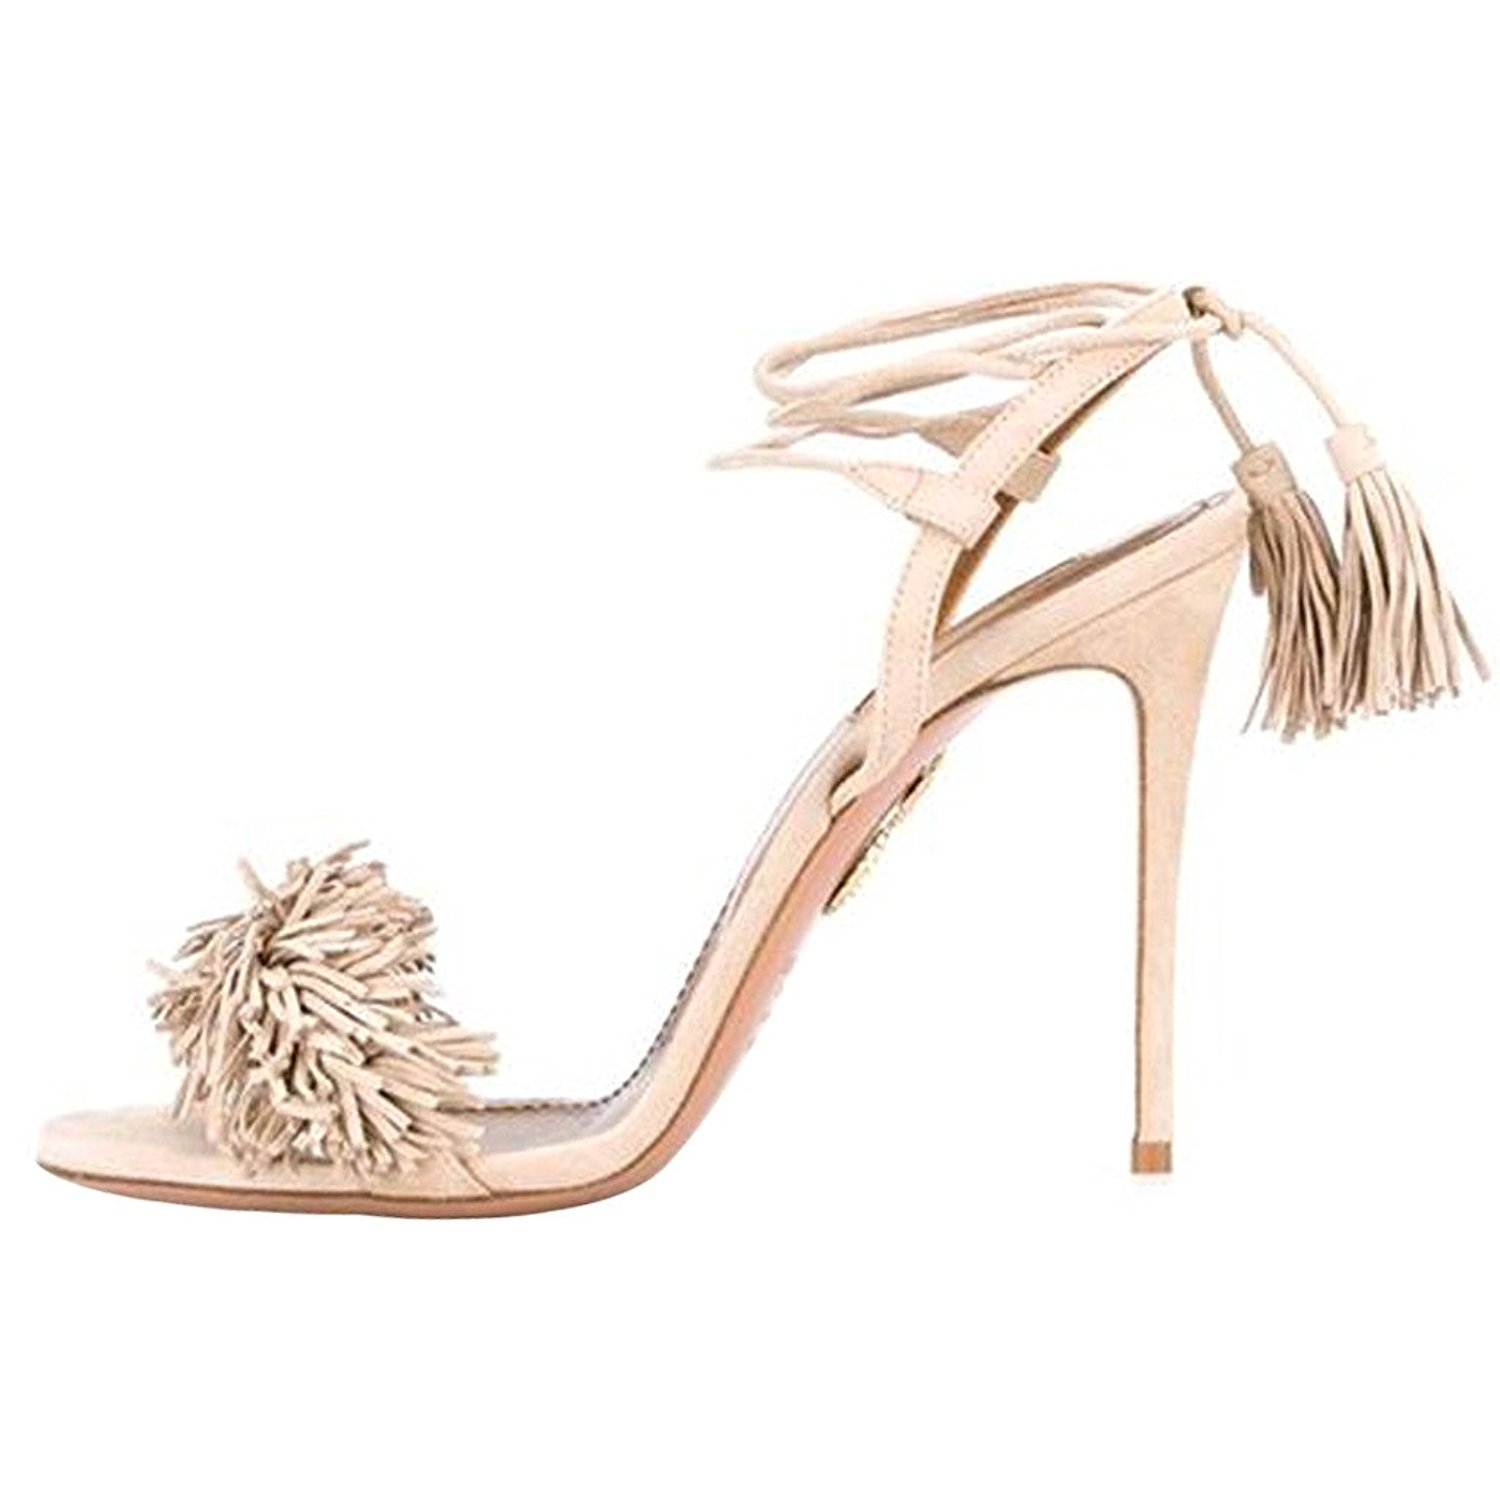 517cacd6af71ff Get Quotations · Comfity Heeled Sandals For Women Women s Tassels Sandals  Lace Up Slingback Shoes High Heel Dress Sandals